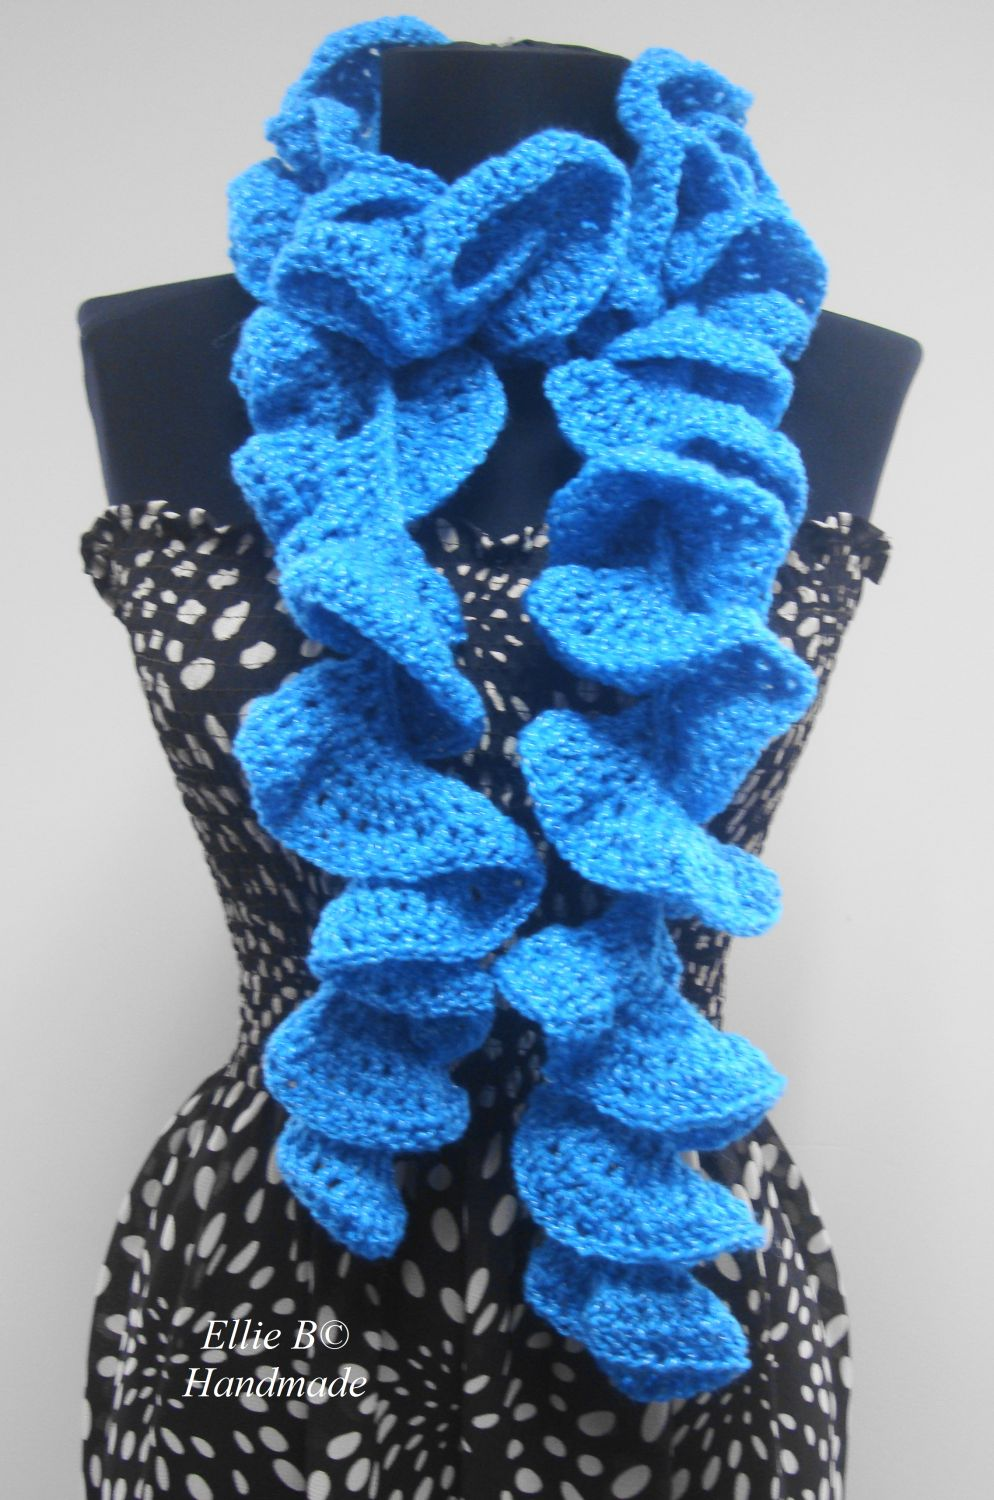 Free Knitting Pattern For Spiral Scarves : SPIRAL CROCHET SCARF How To Crochet